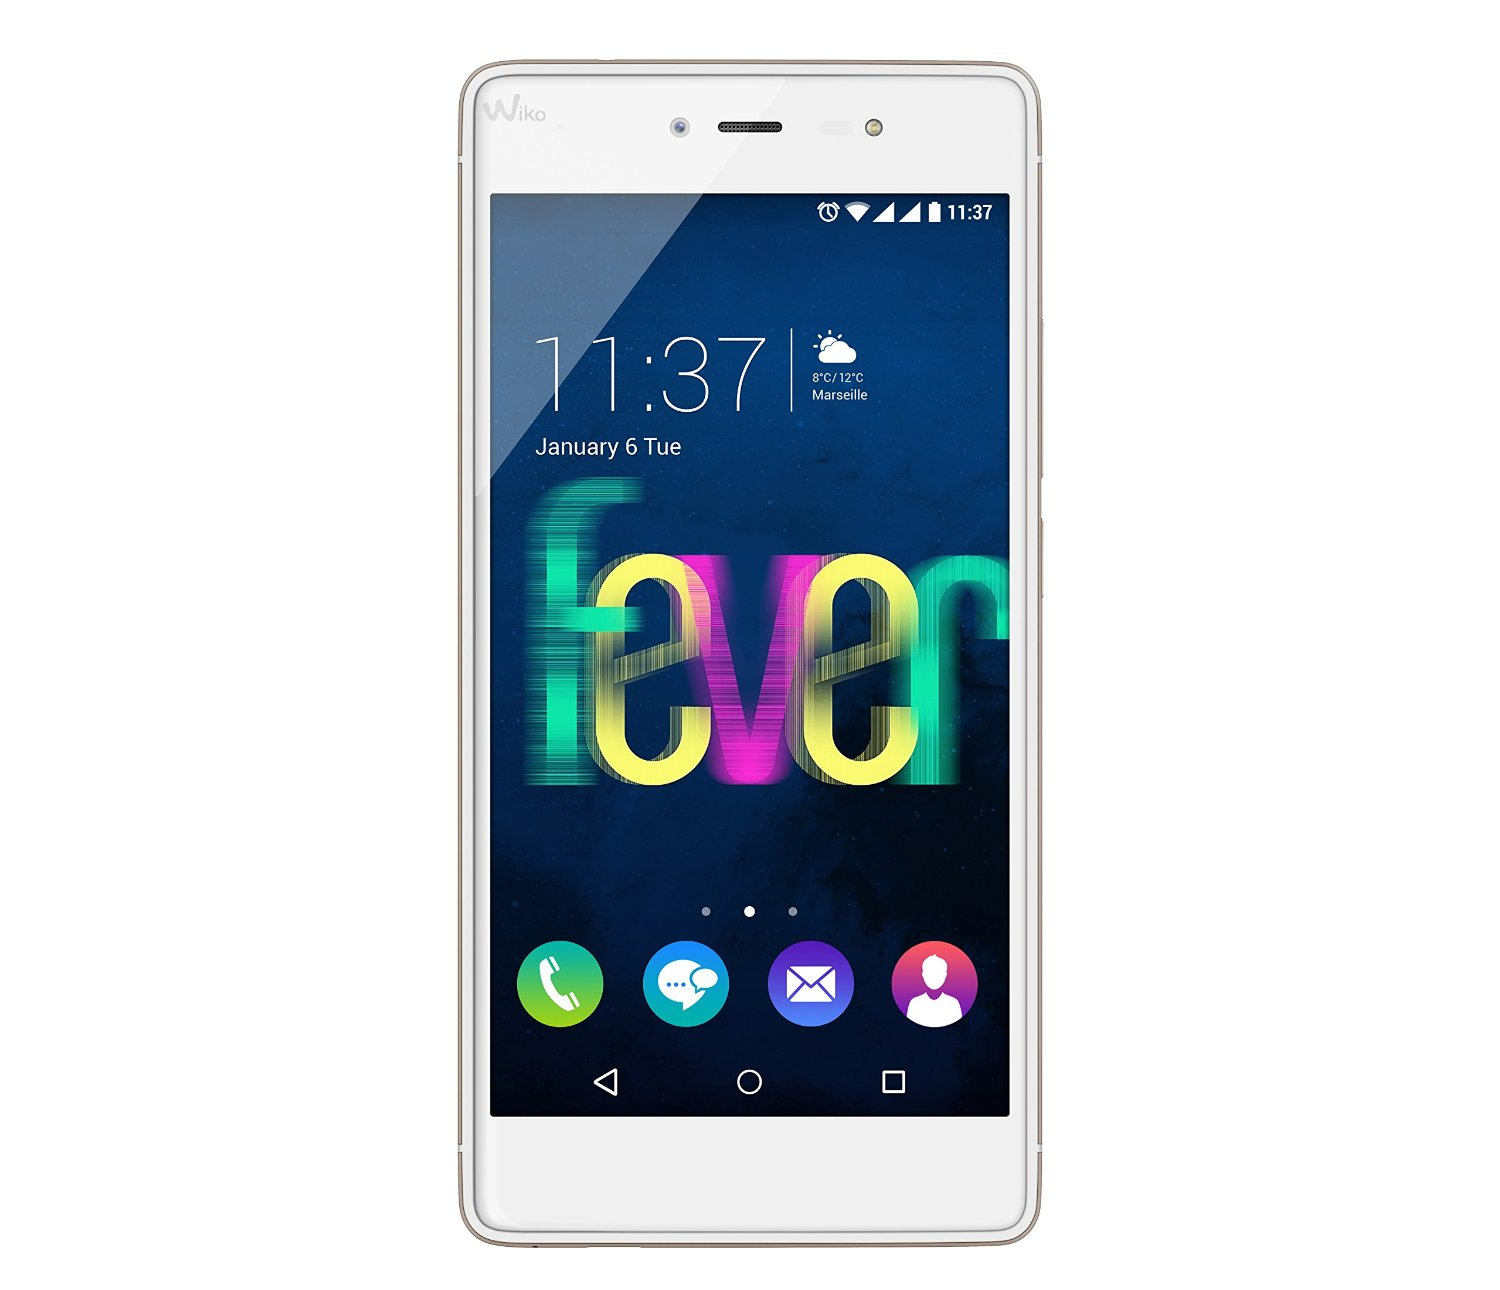 wiko fever 4g dual sim lte android smartphone in weiss. Black Bedroom Furniture Sets. Home Design Ideas